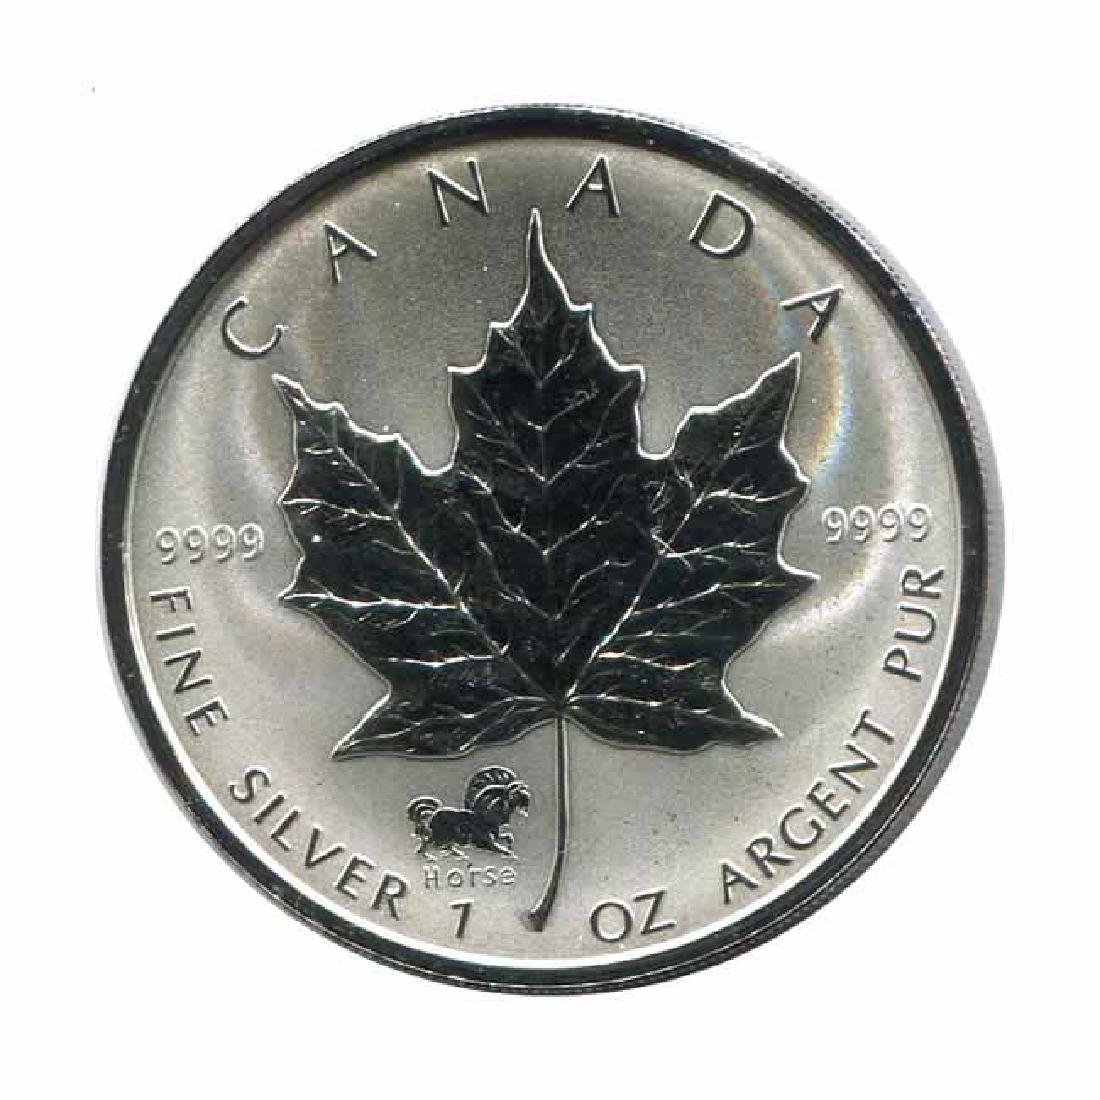 2002 Canada 1 oz. Silver Maple Leaf Reverse Proof Horse